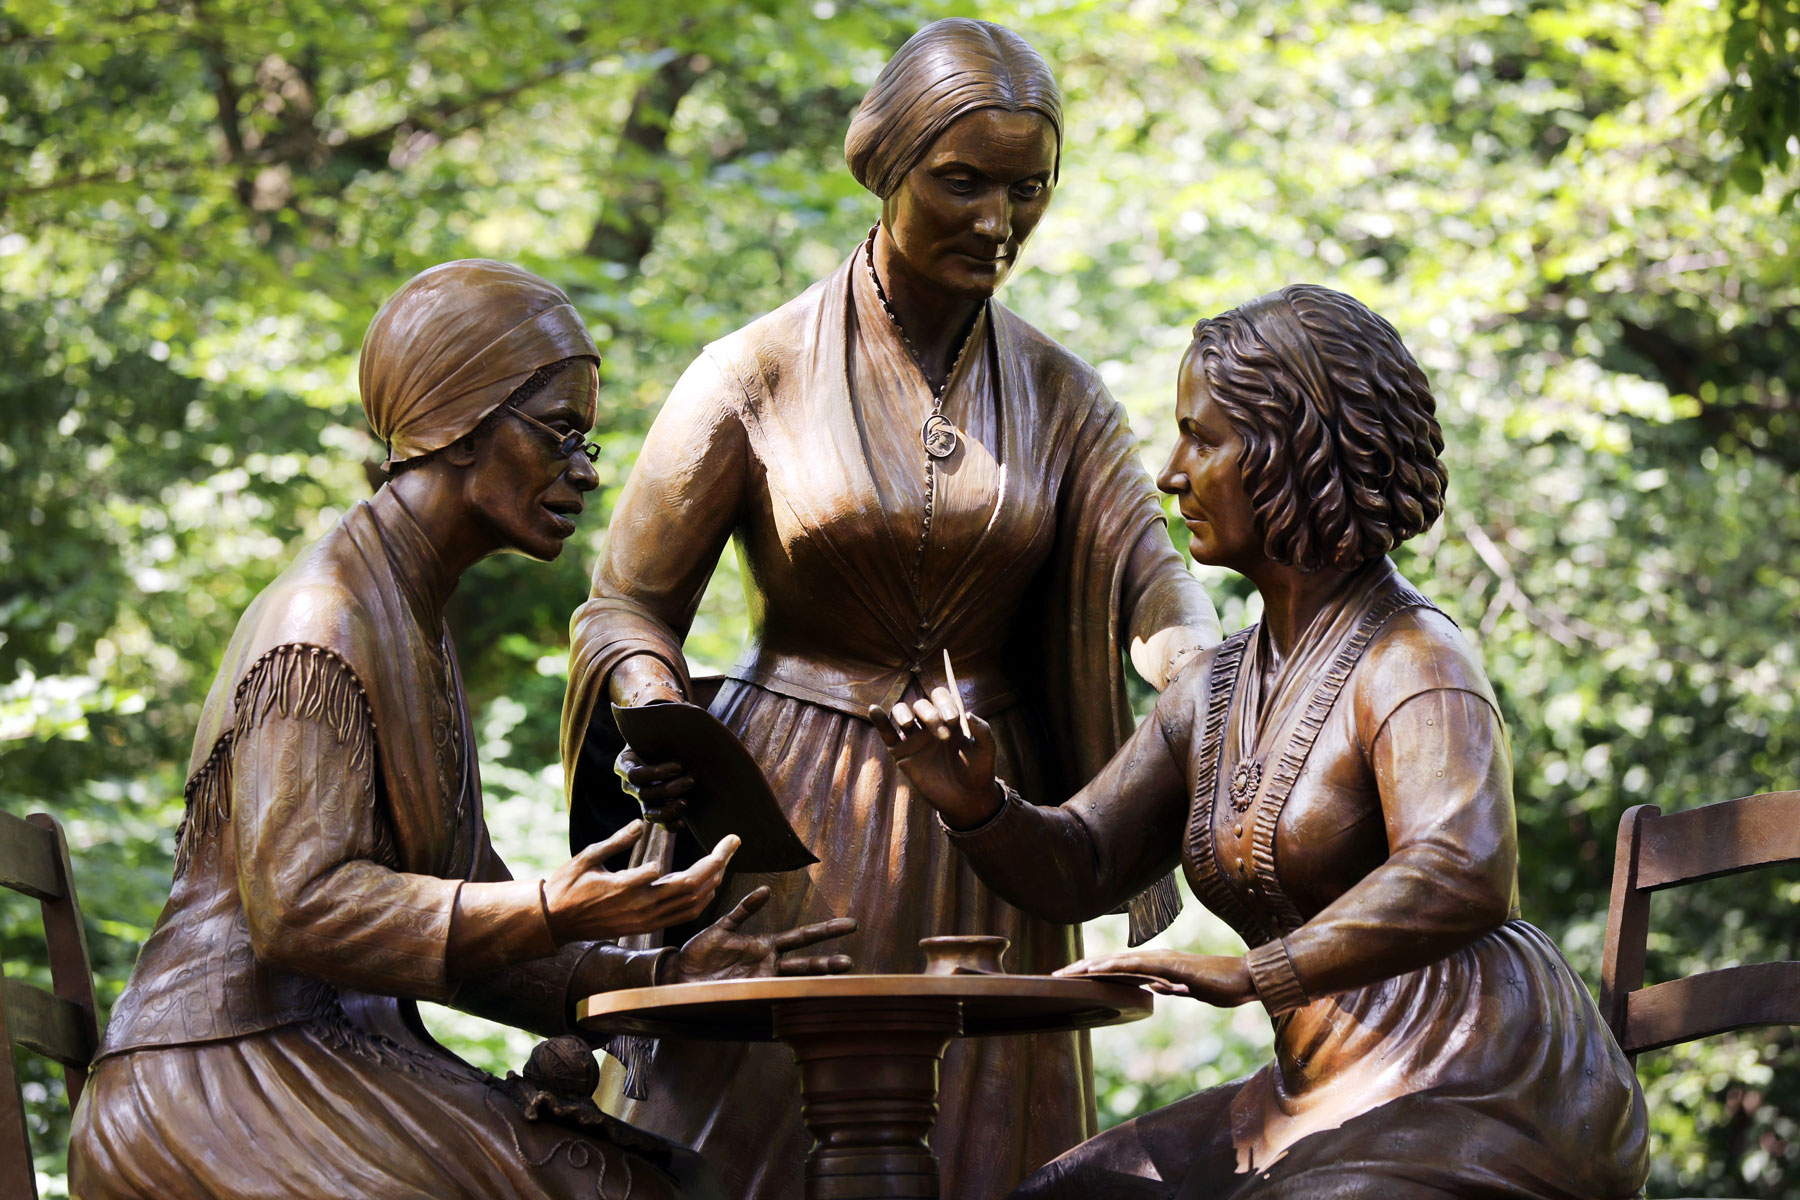 statue of women's rights pioneers Sojourner Truth, Susan B Anthony, and Elizabeth Cady Stanton